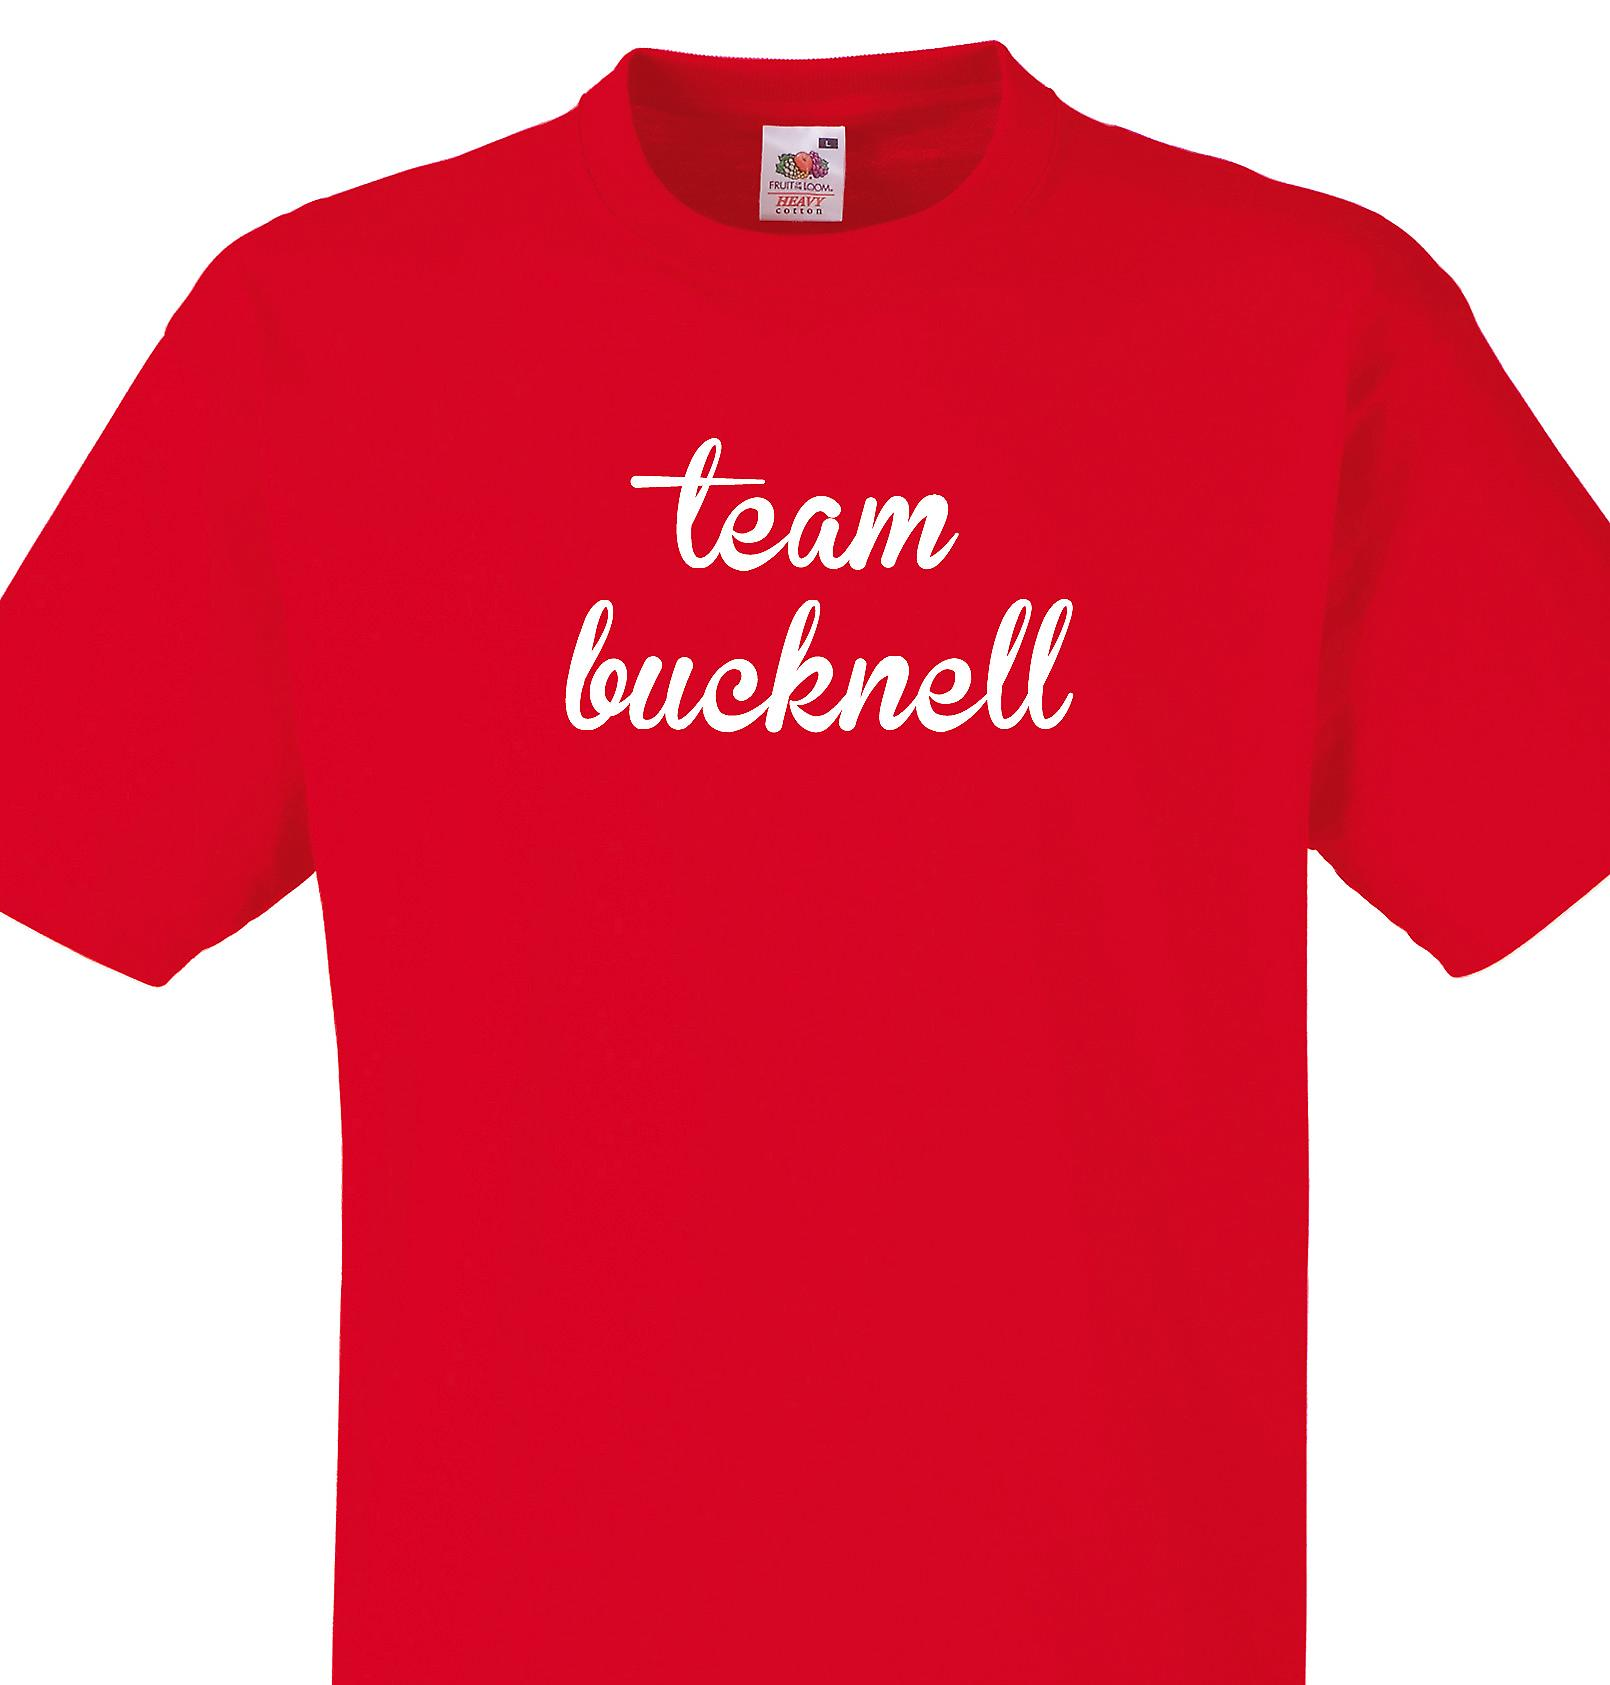 Team Bucknell Red T shirt